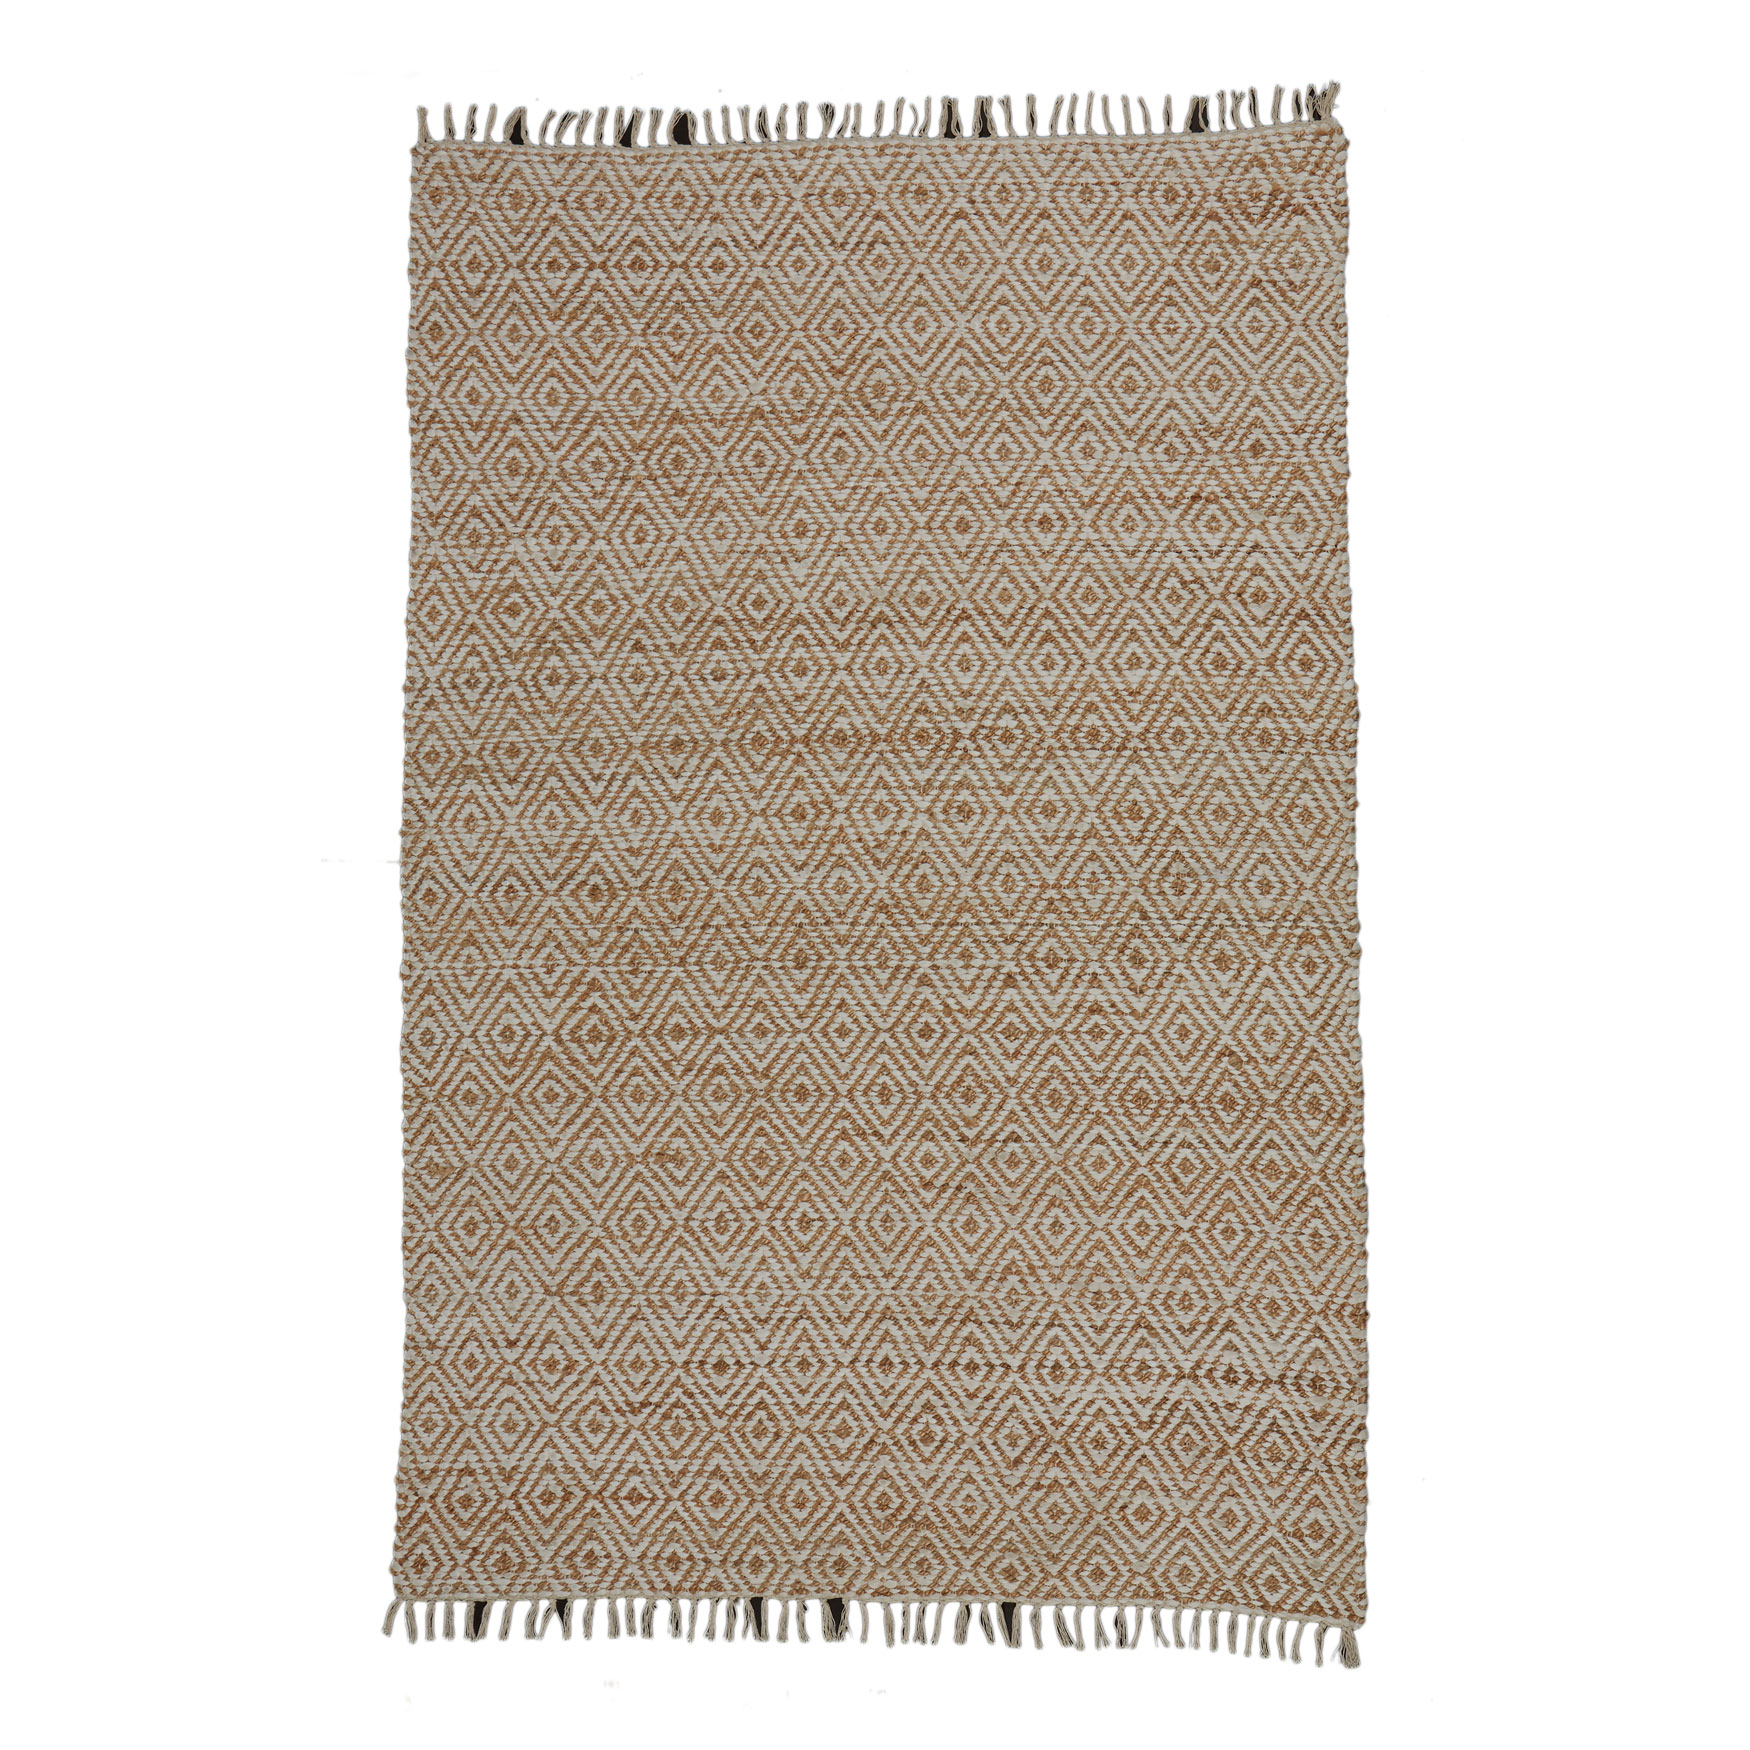 Ellwood Small Diamond Pattern Rug, NATURAL WHITE